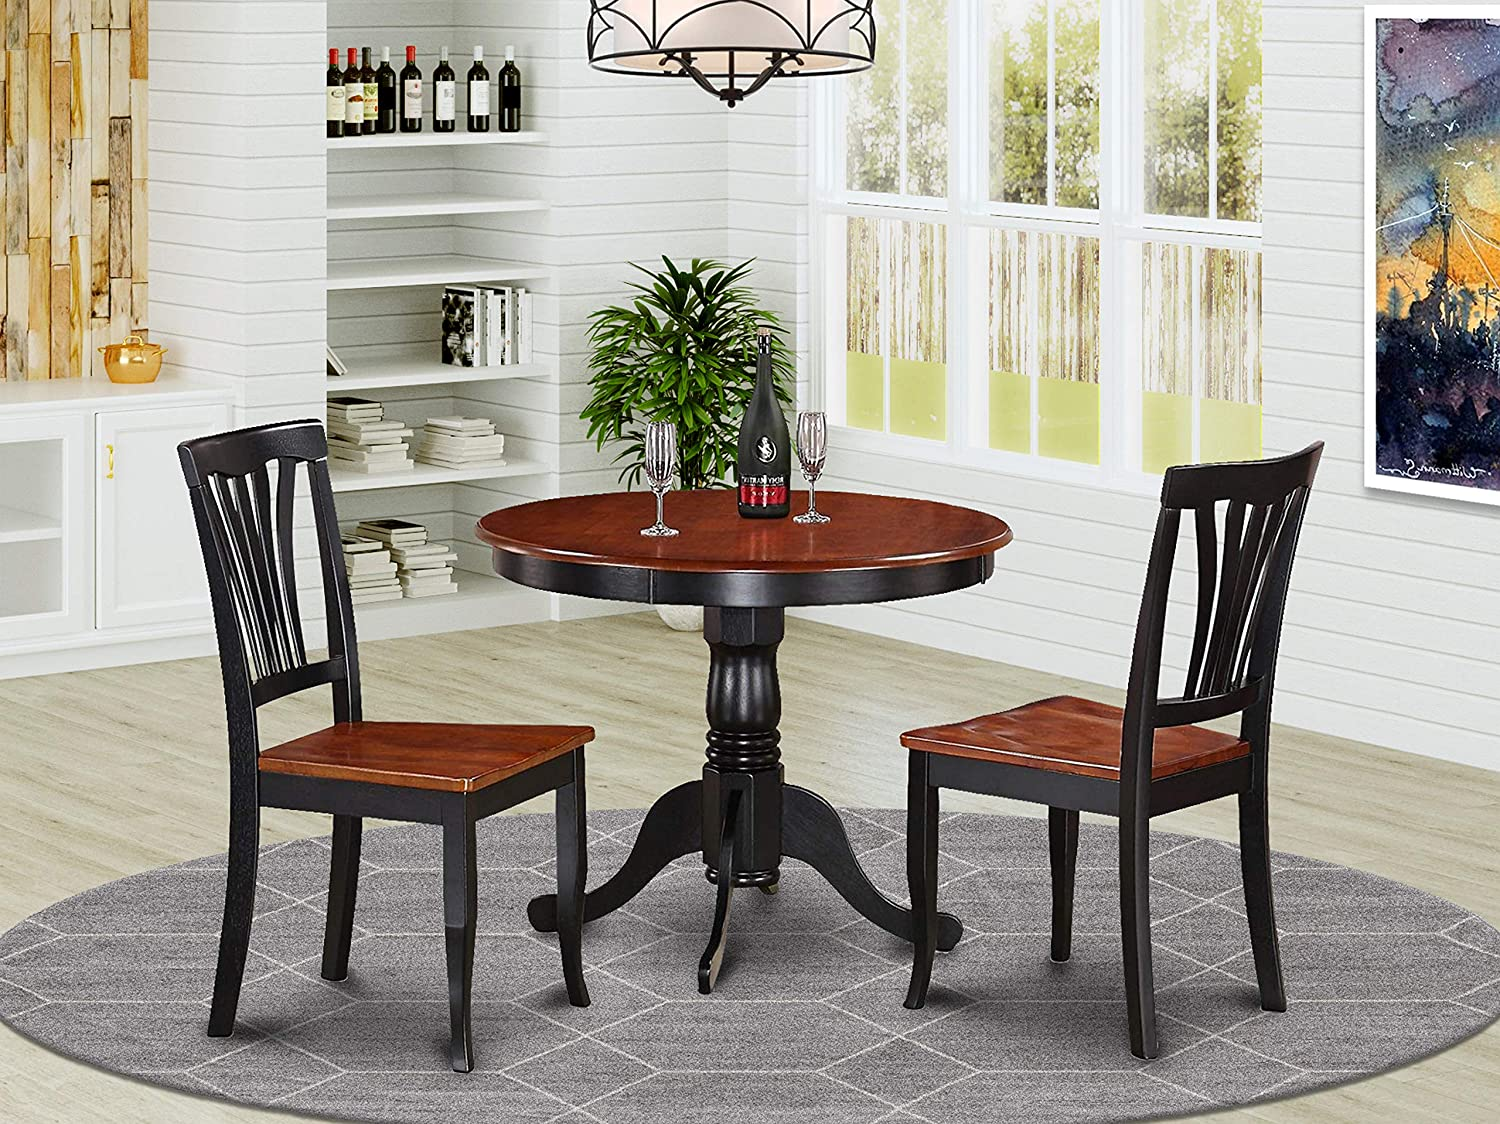 Amazon Com East West Furniture Modern Dining Table Set 2 Amazing Wooden Dining Chairs A Gorgeous Dining Table Wooden Seat Cherry And Black Dining Table Table Chair Sets